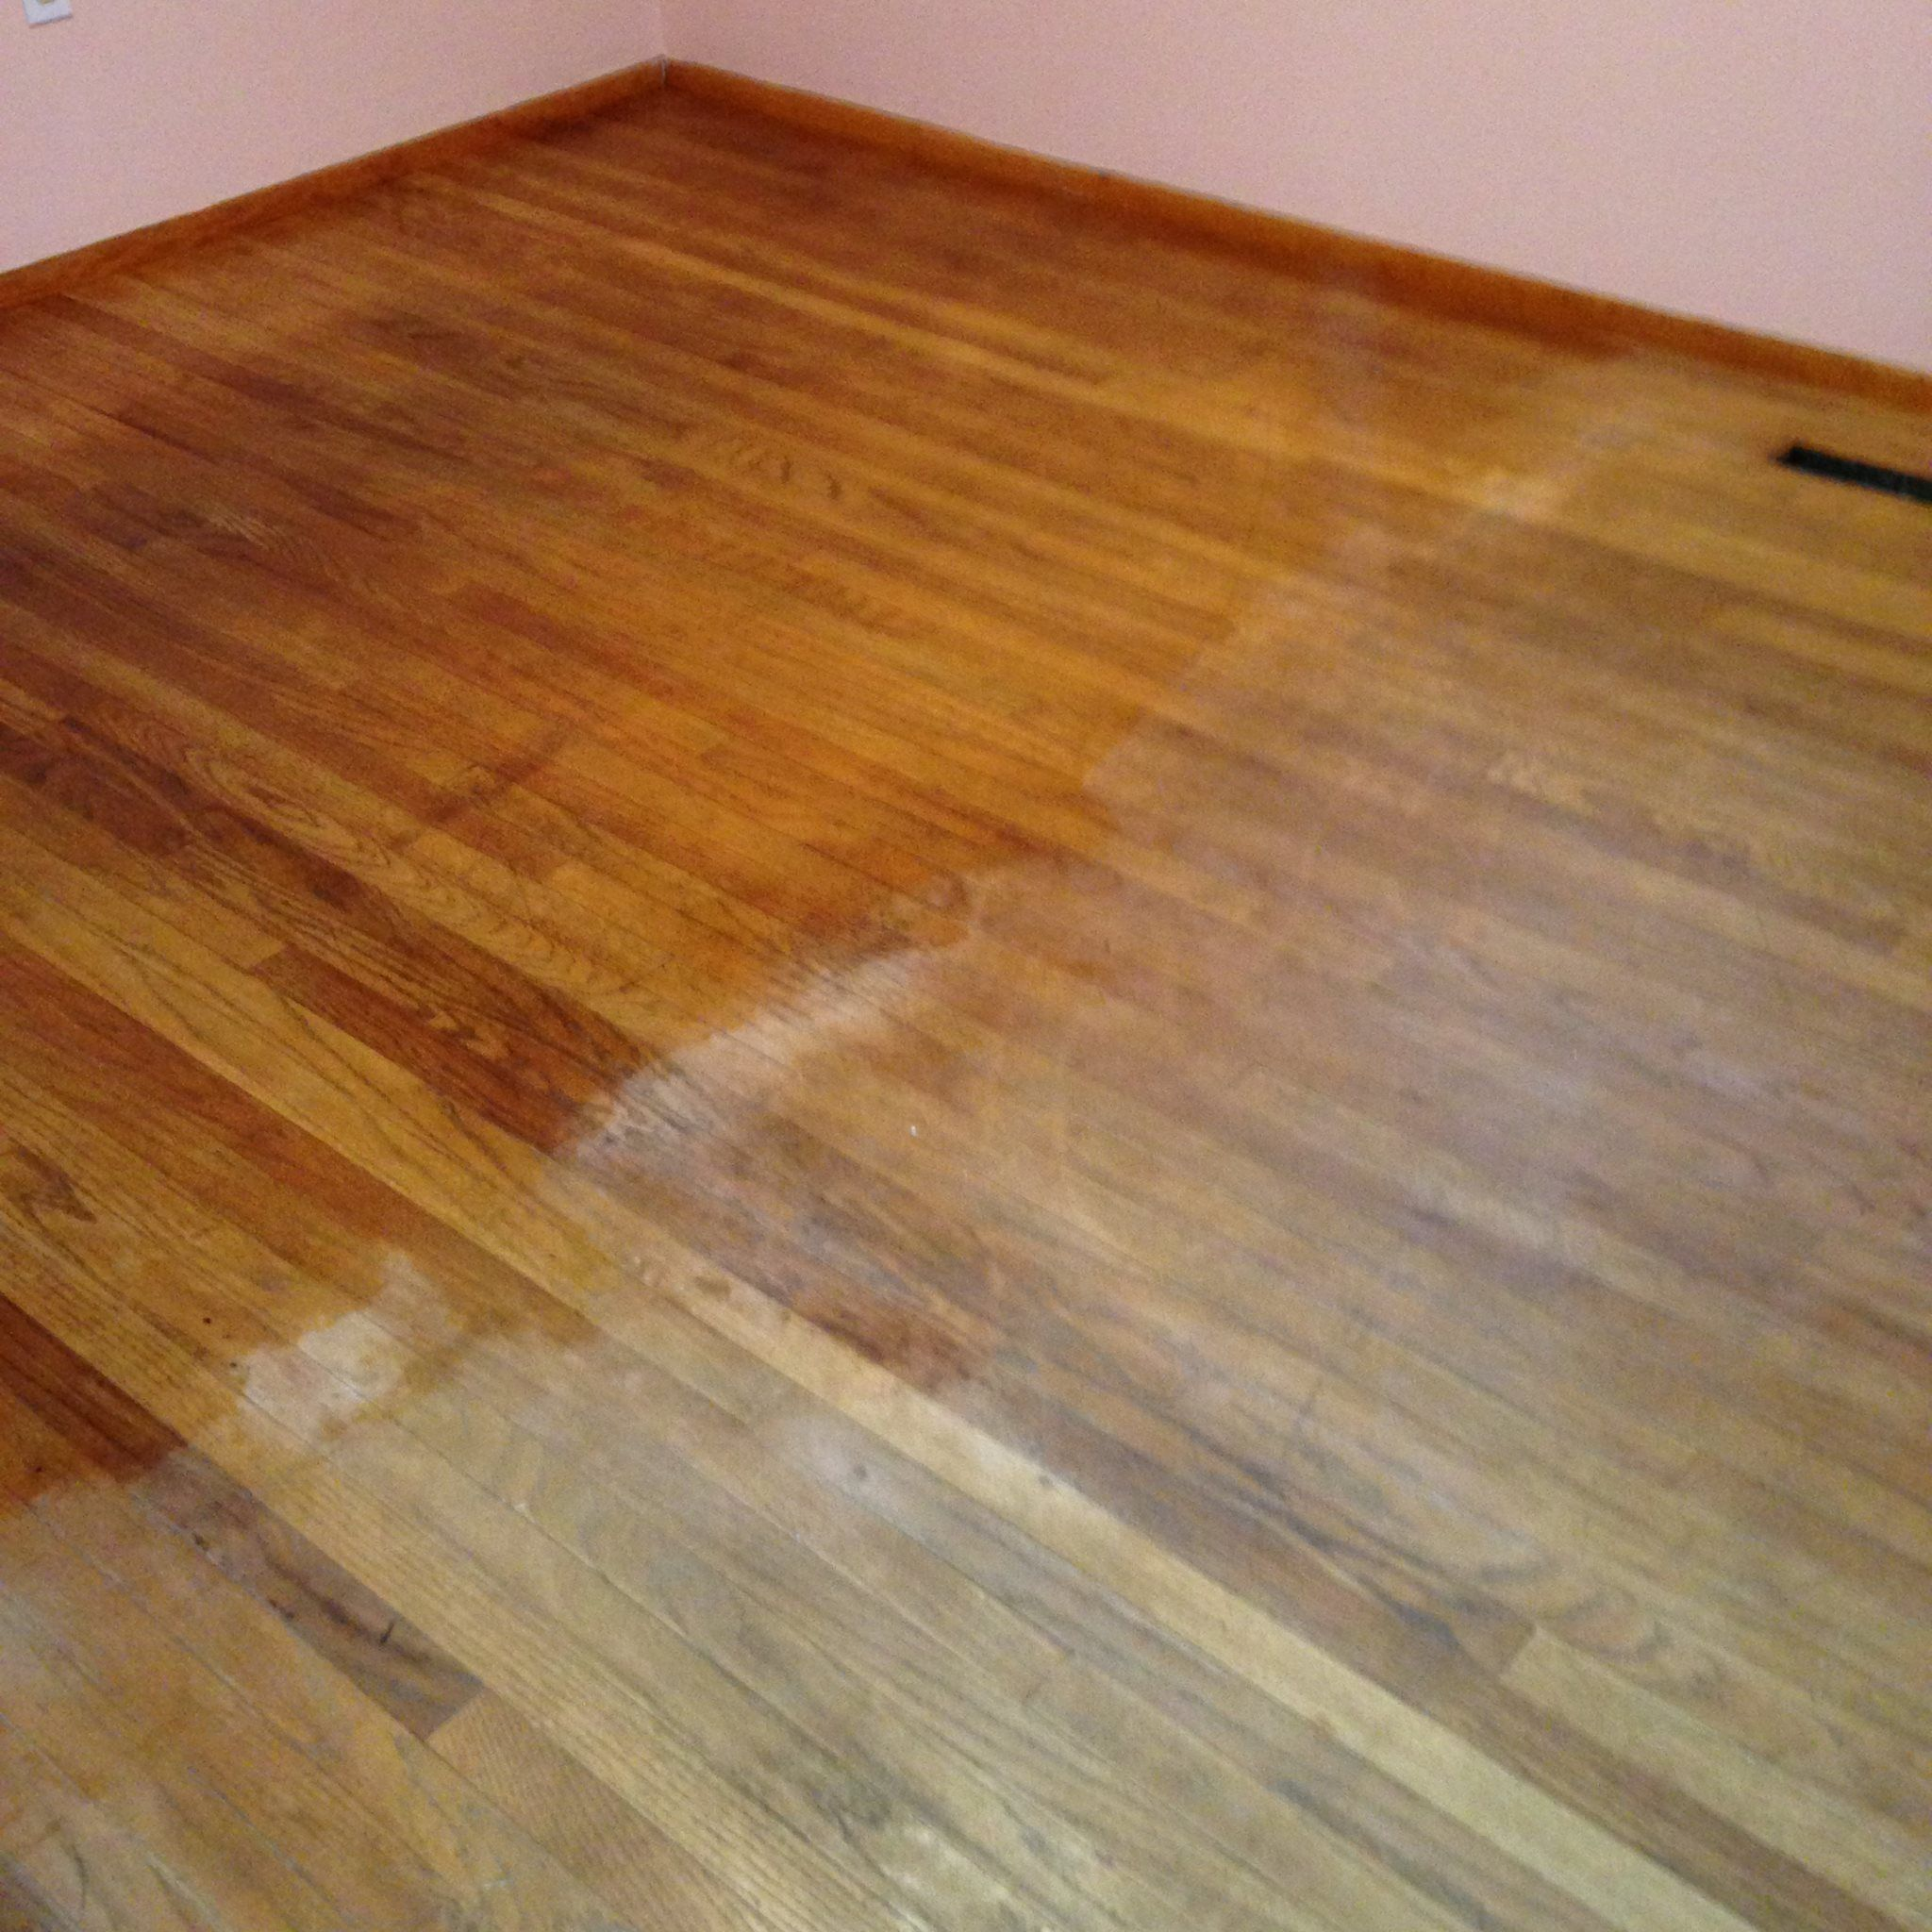 If Your Old Wood Floors Have Totally Lost Their Er Rub English Lemon Oil Into The After A Good Cleaning